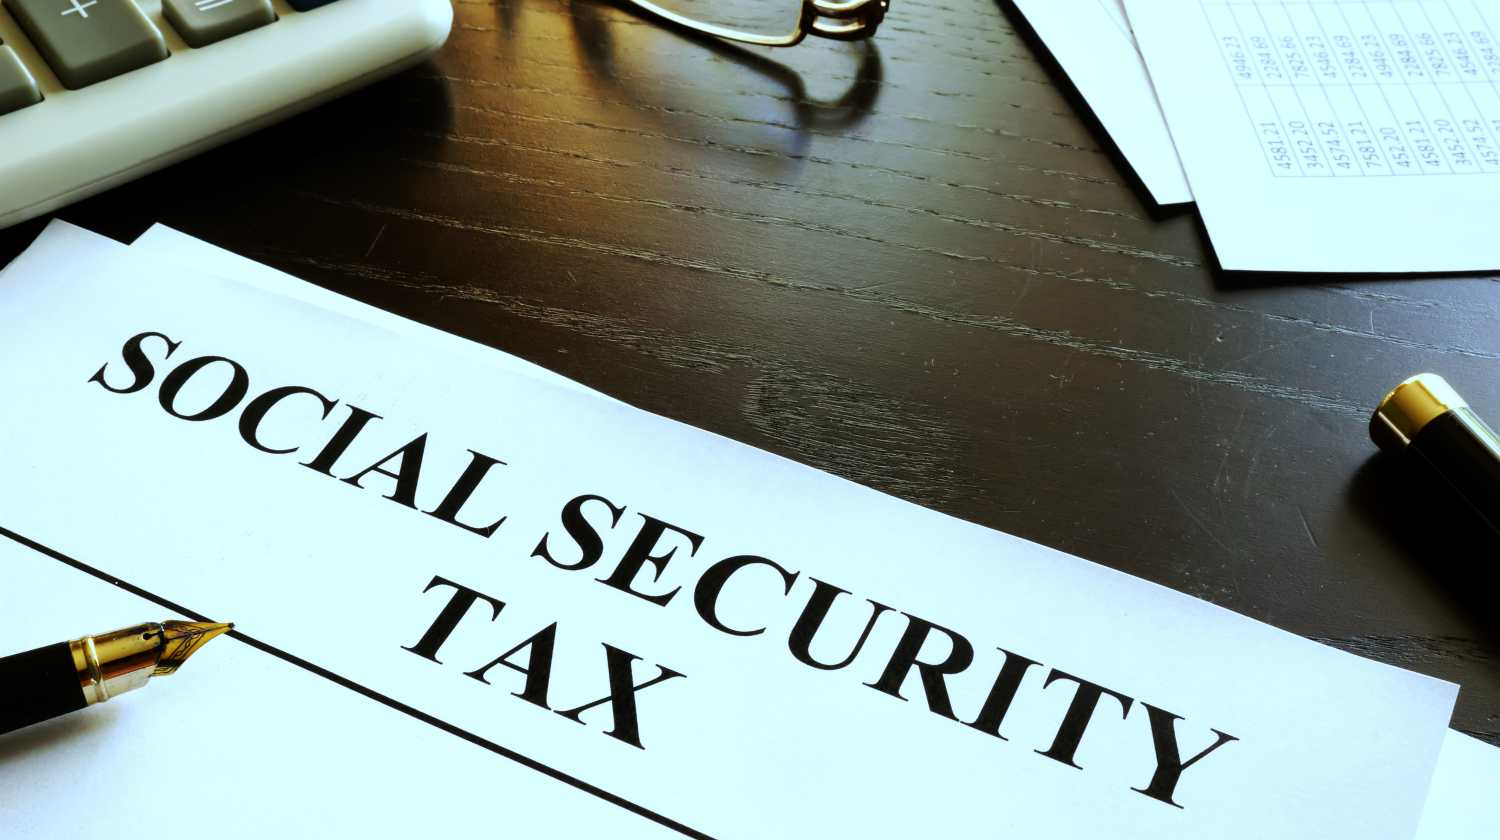 Social Security Tax What Is It For And How Much Do I Pay